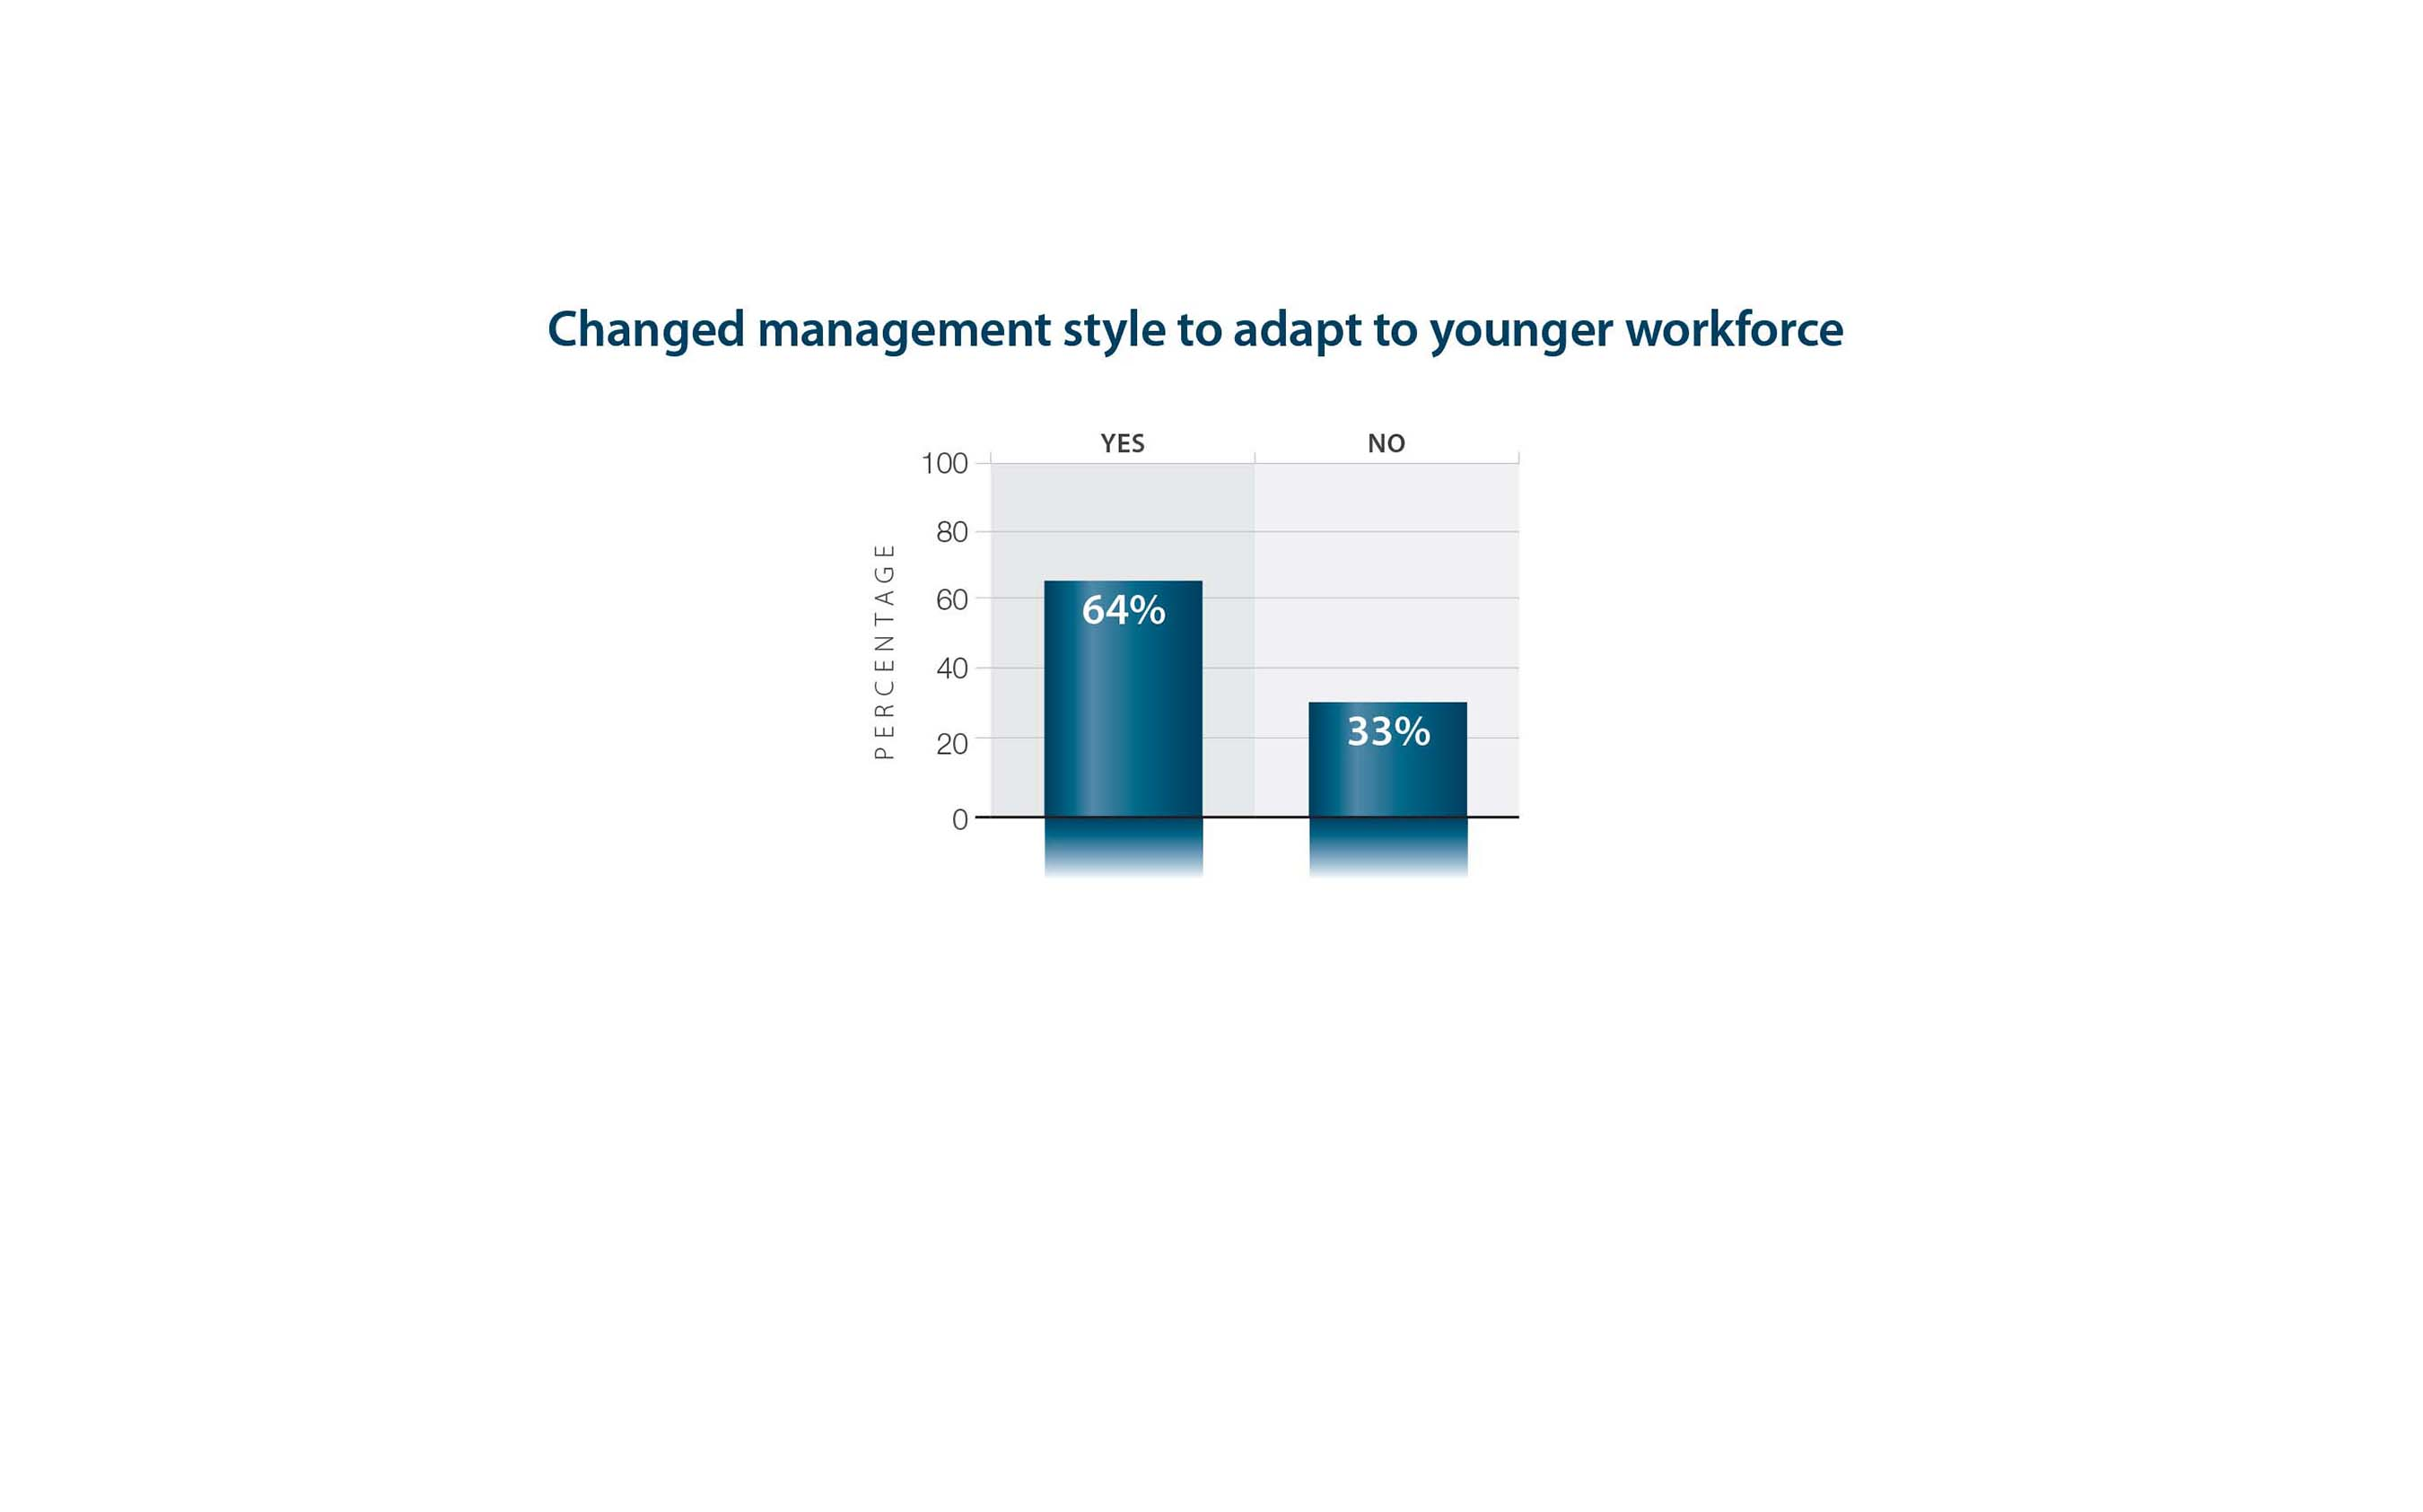 Changed management style to adapt to younger workforce